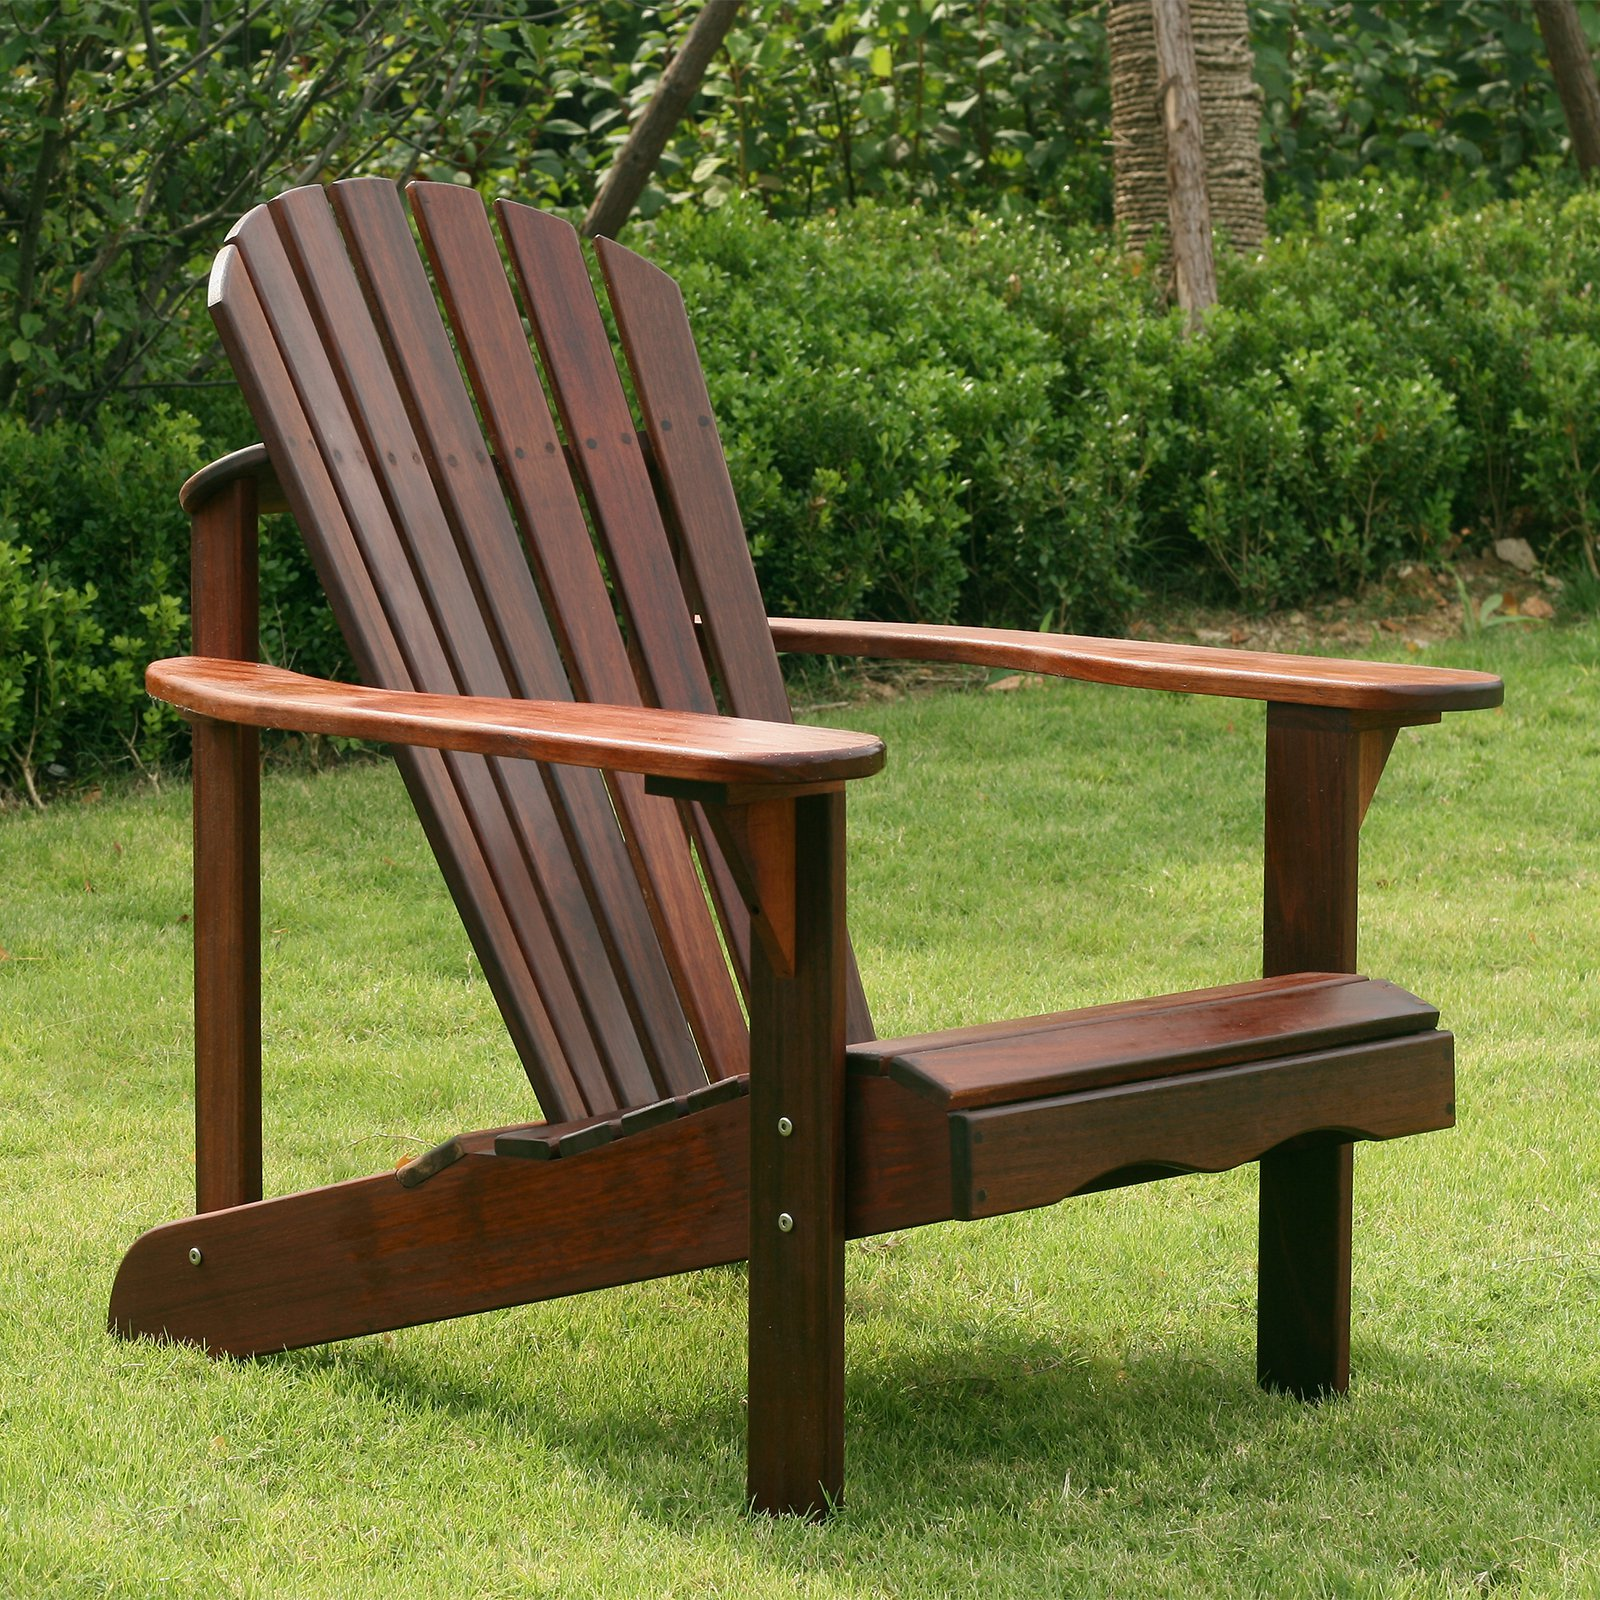 Belham Living Richmond Curveback Shorea Wood Deluxe Adirondack Chair